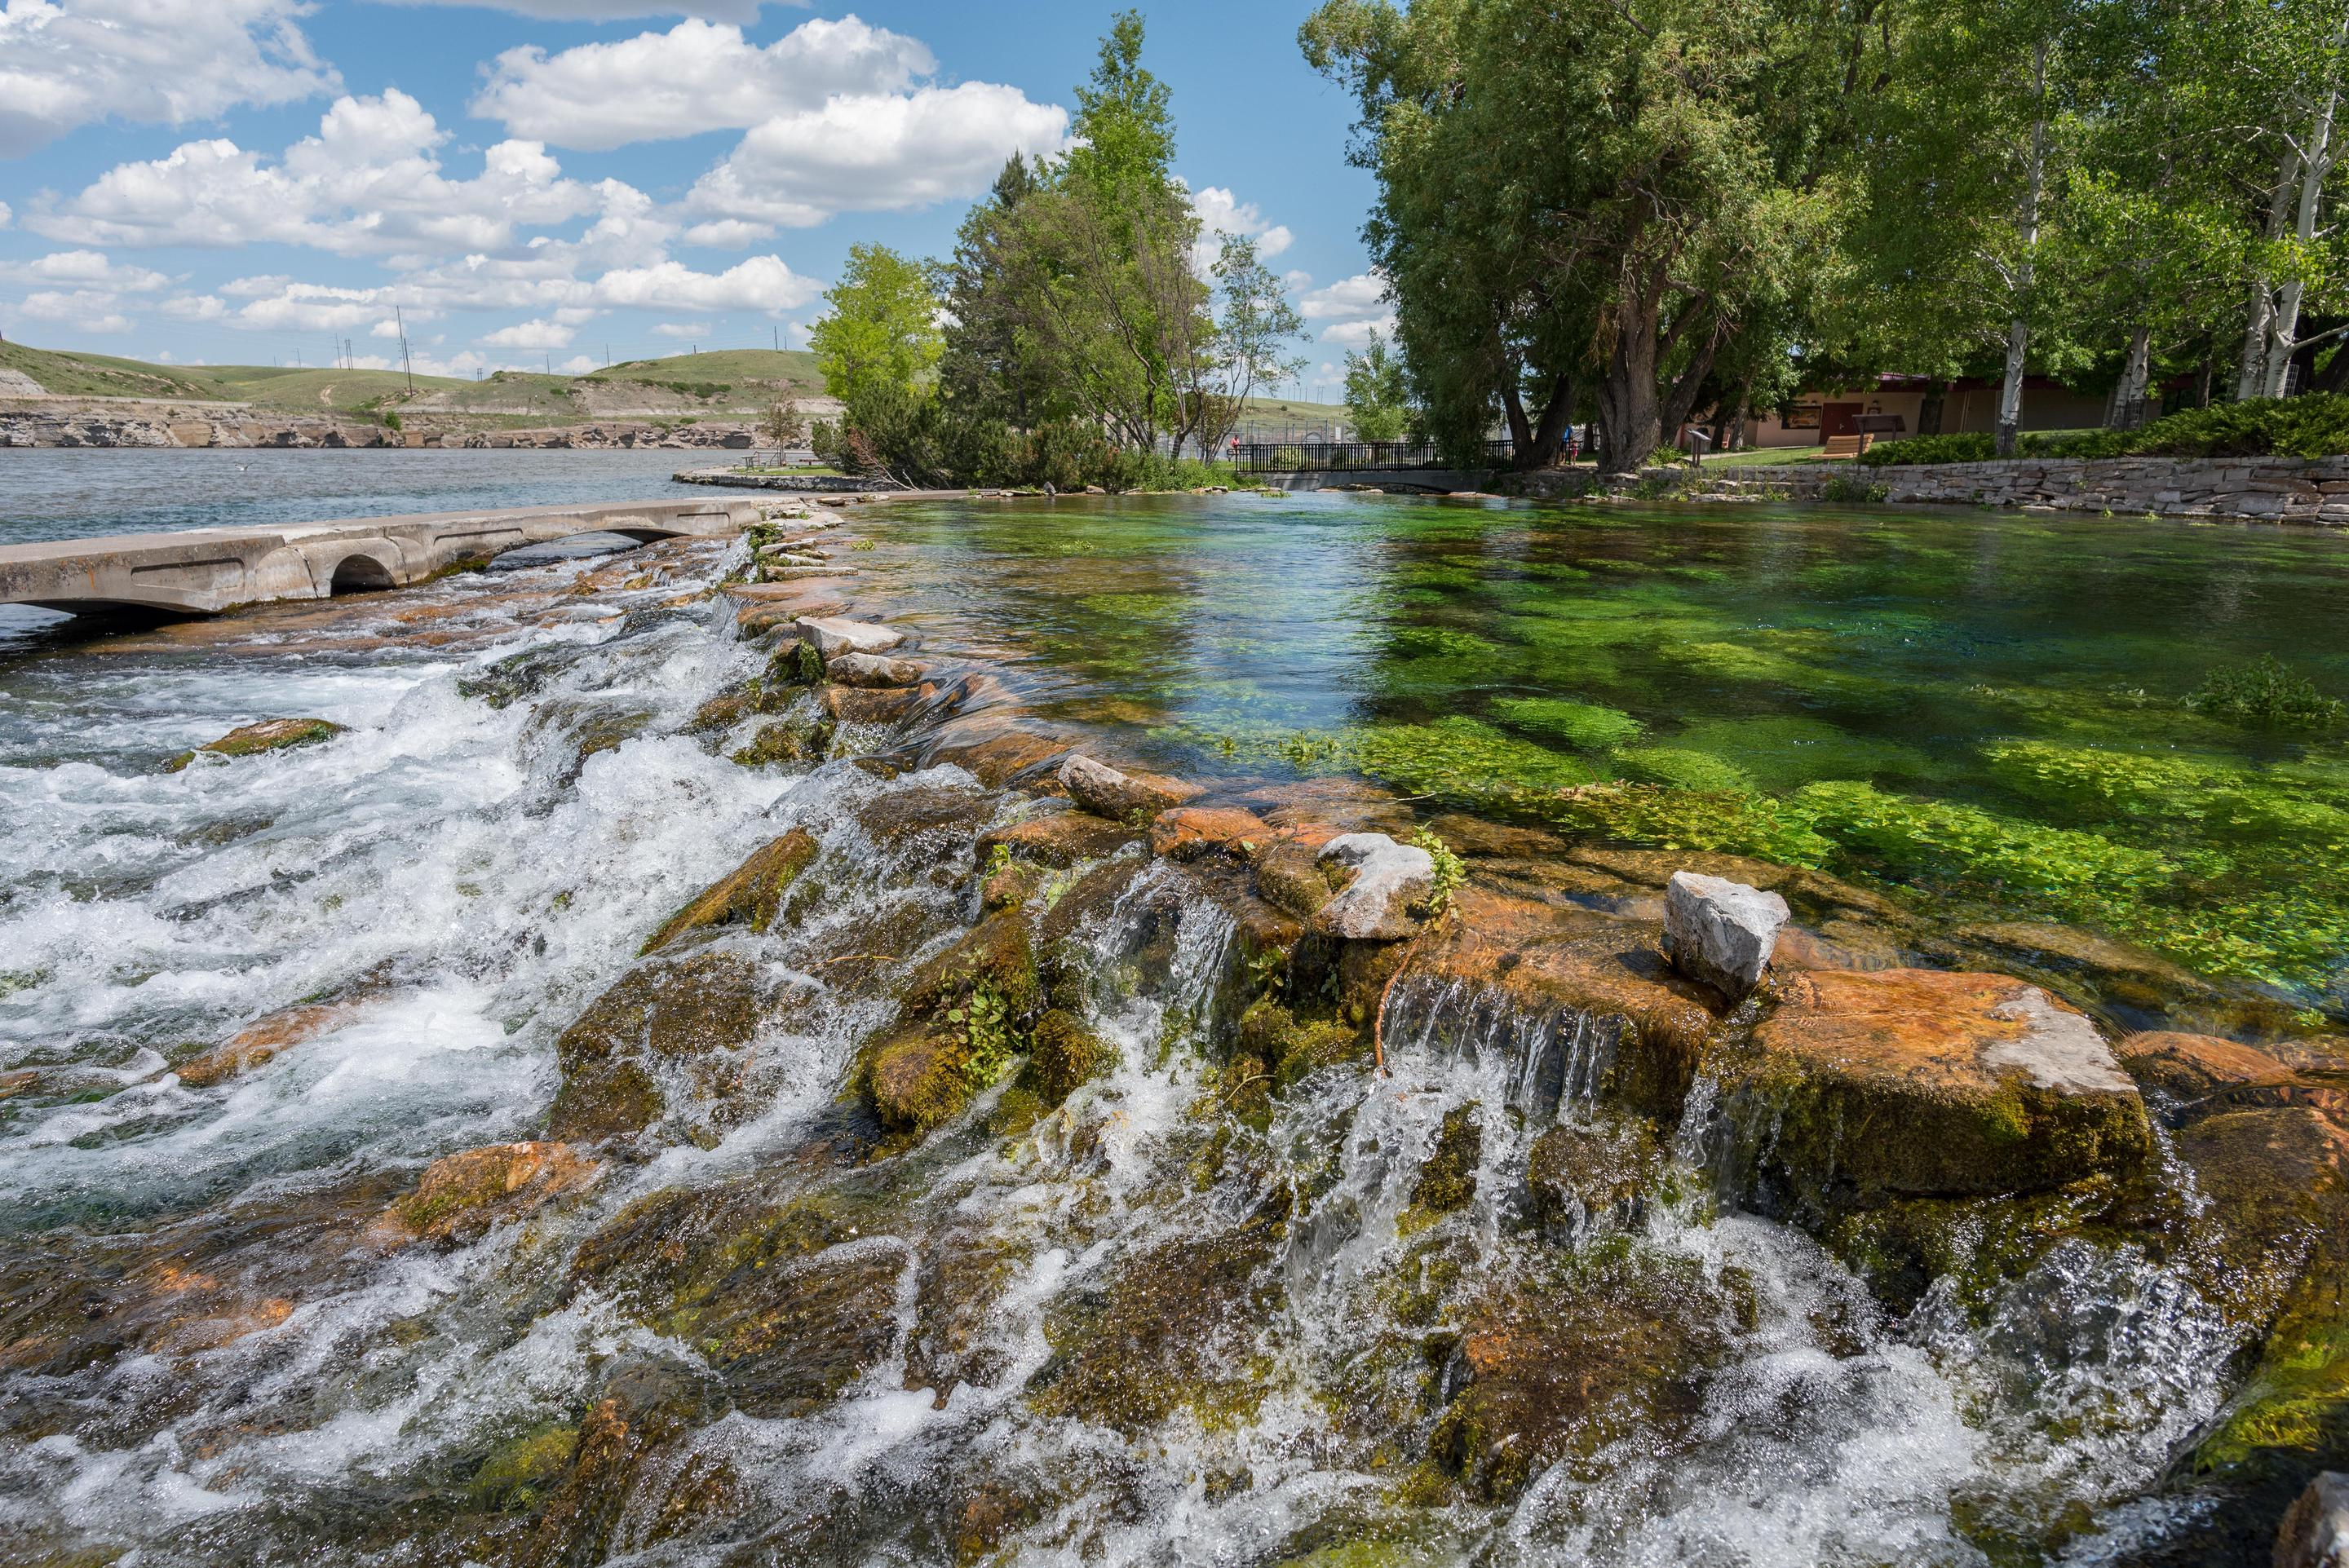 Giant SpringsGiant springs is a site along the Lewis and Clark National Historic Site located in Great Falls, Montana